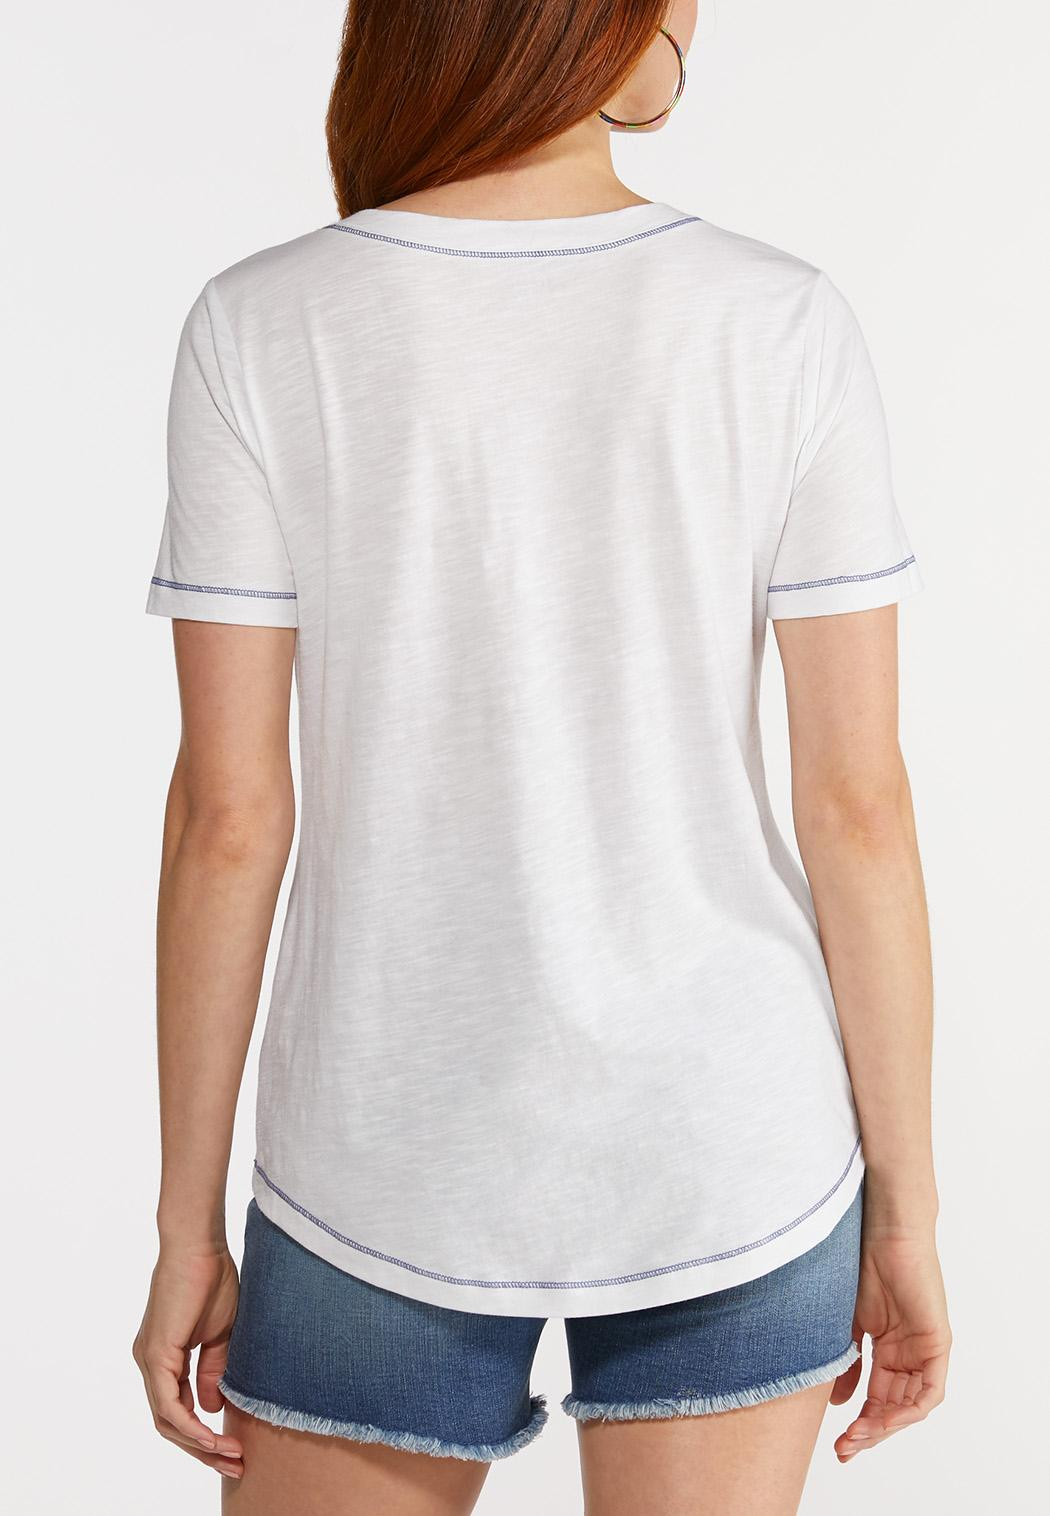 Here Comes The Sun Tee (Item #44300104)